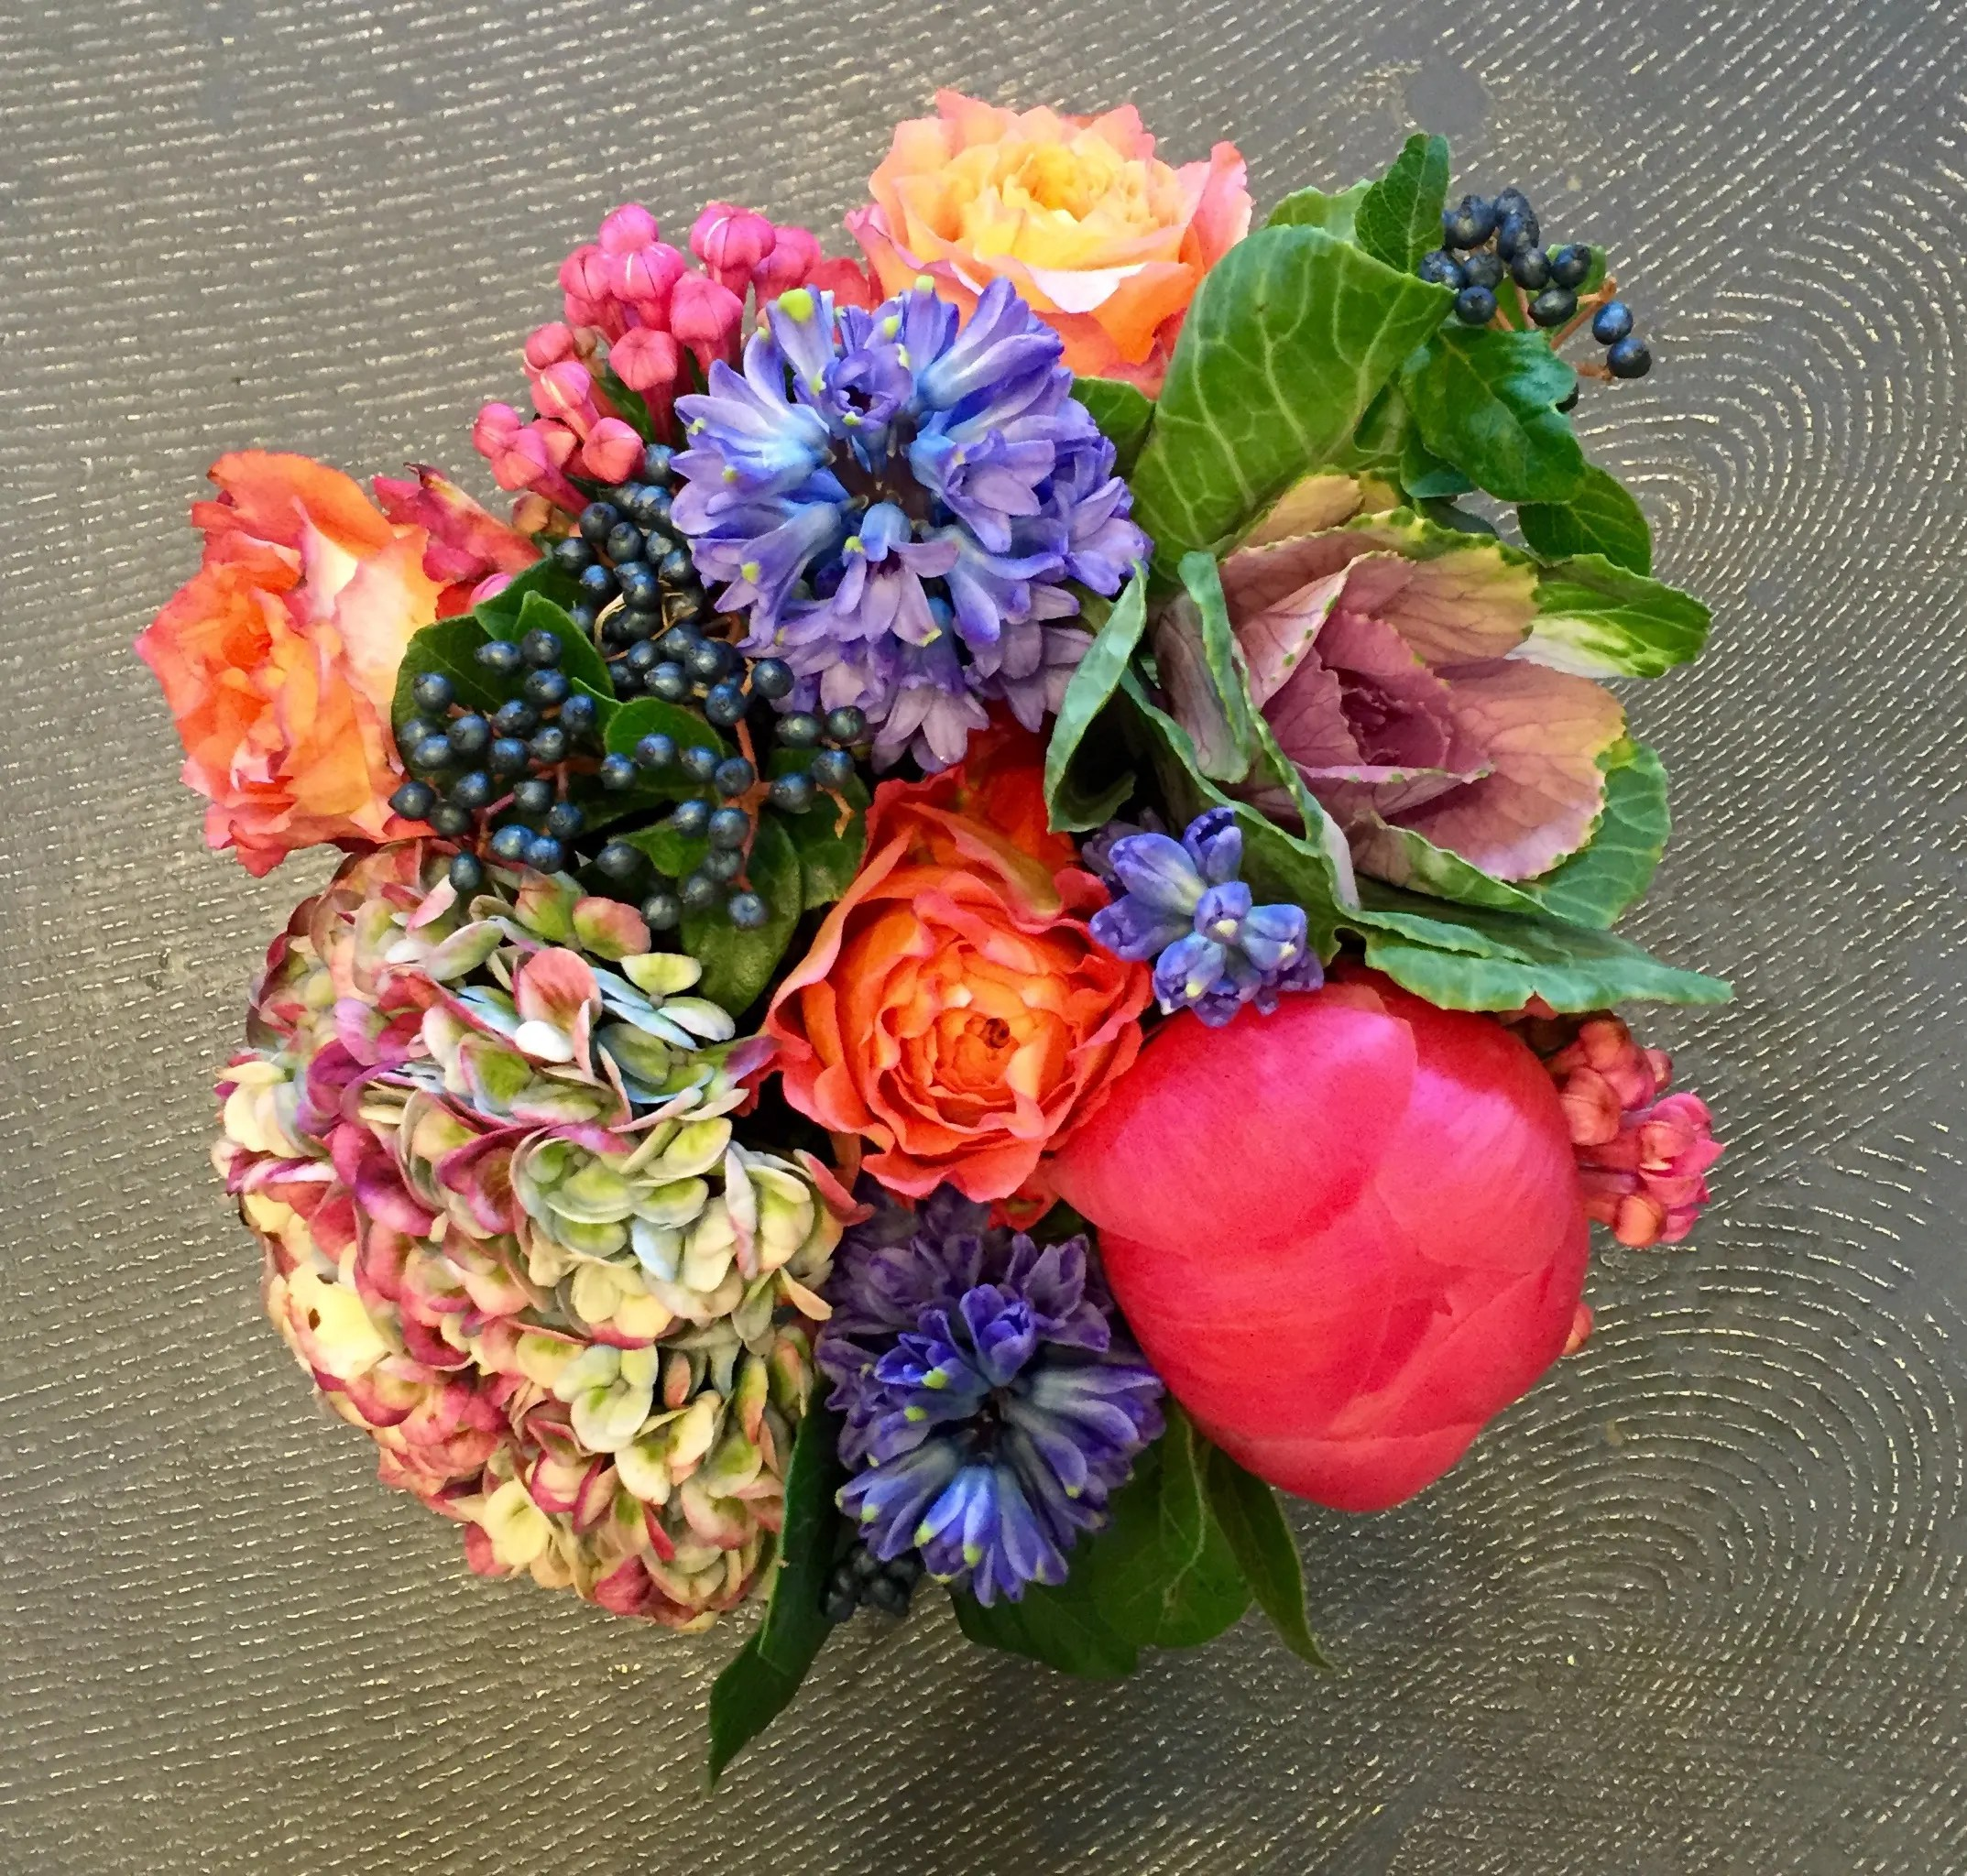 Beautiful Pictures Of Flowers Beautiful Quality Flower Arrangement In A Glass Square In Scarsdale Ny Colonial Village Flowers